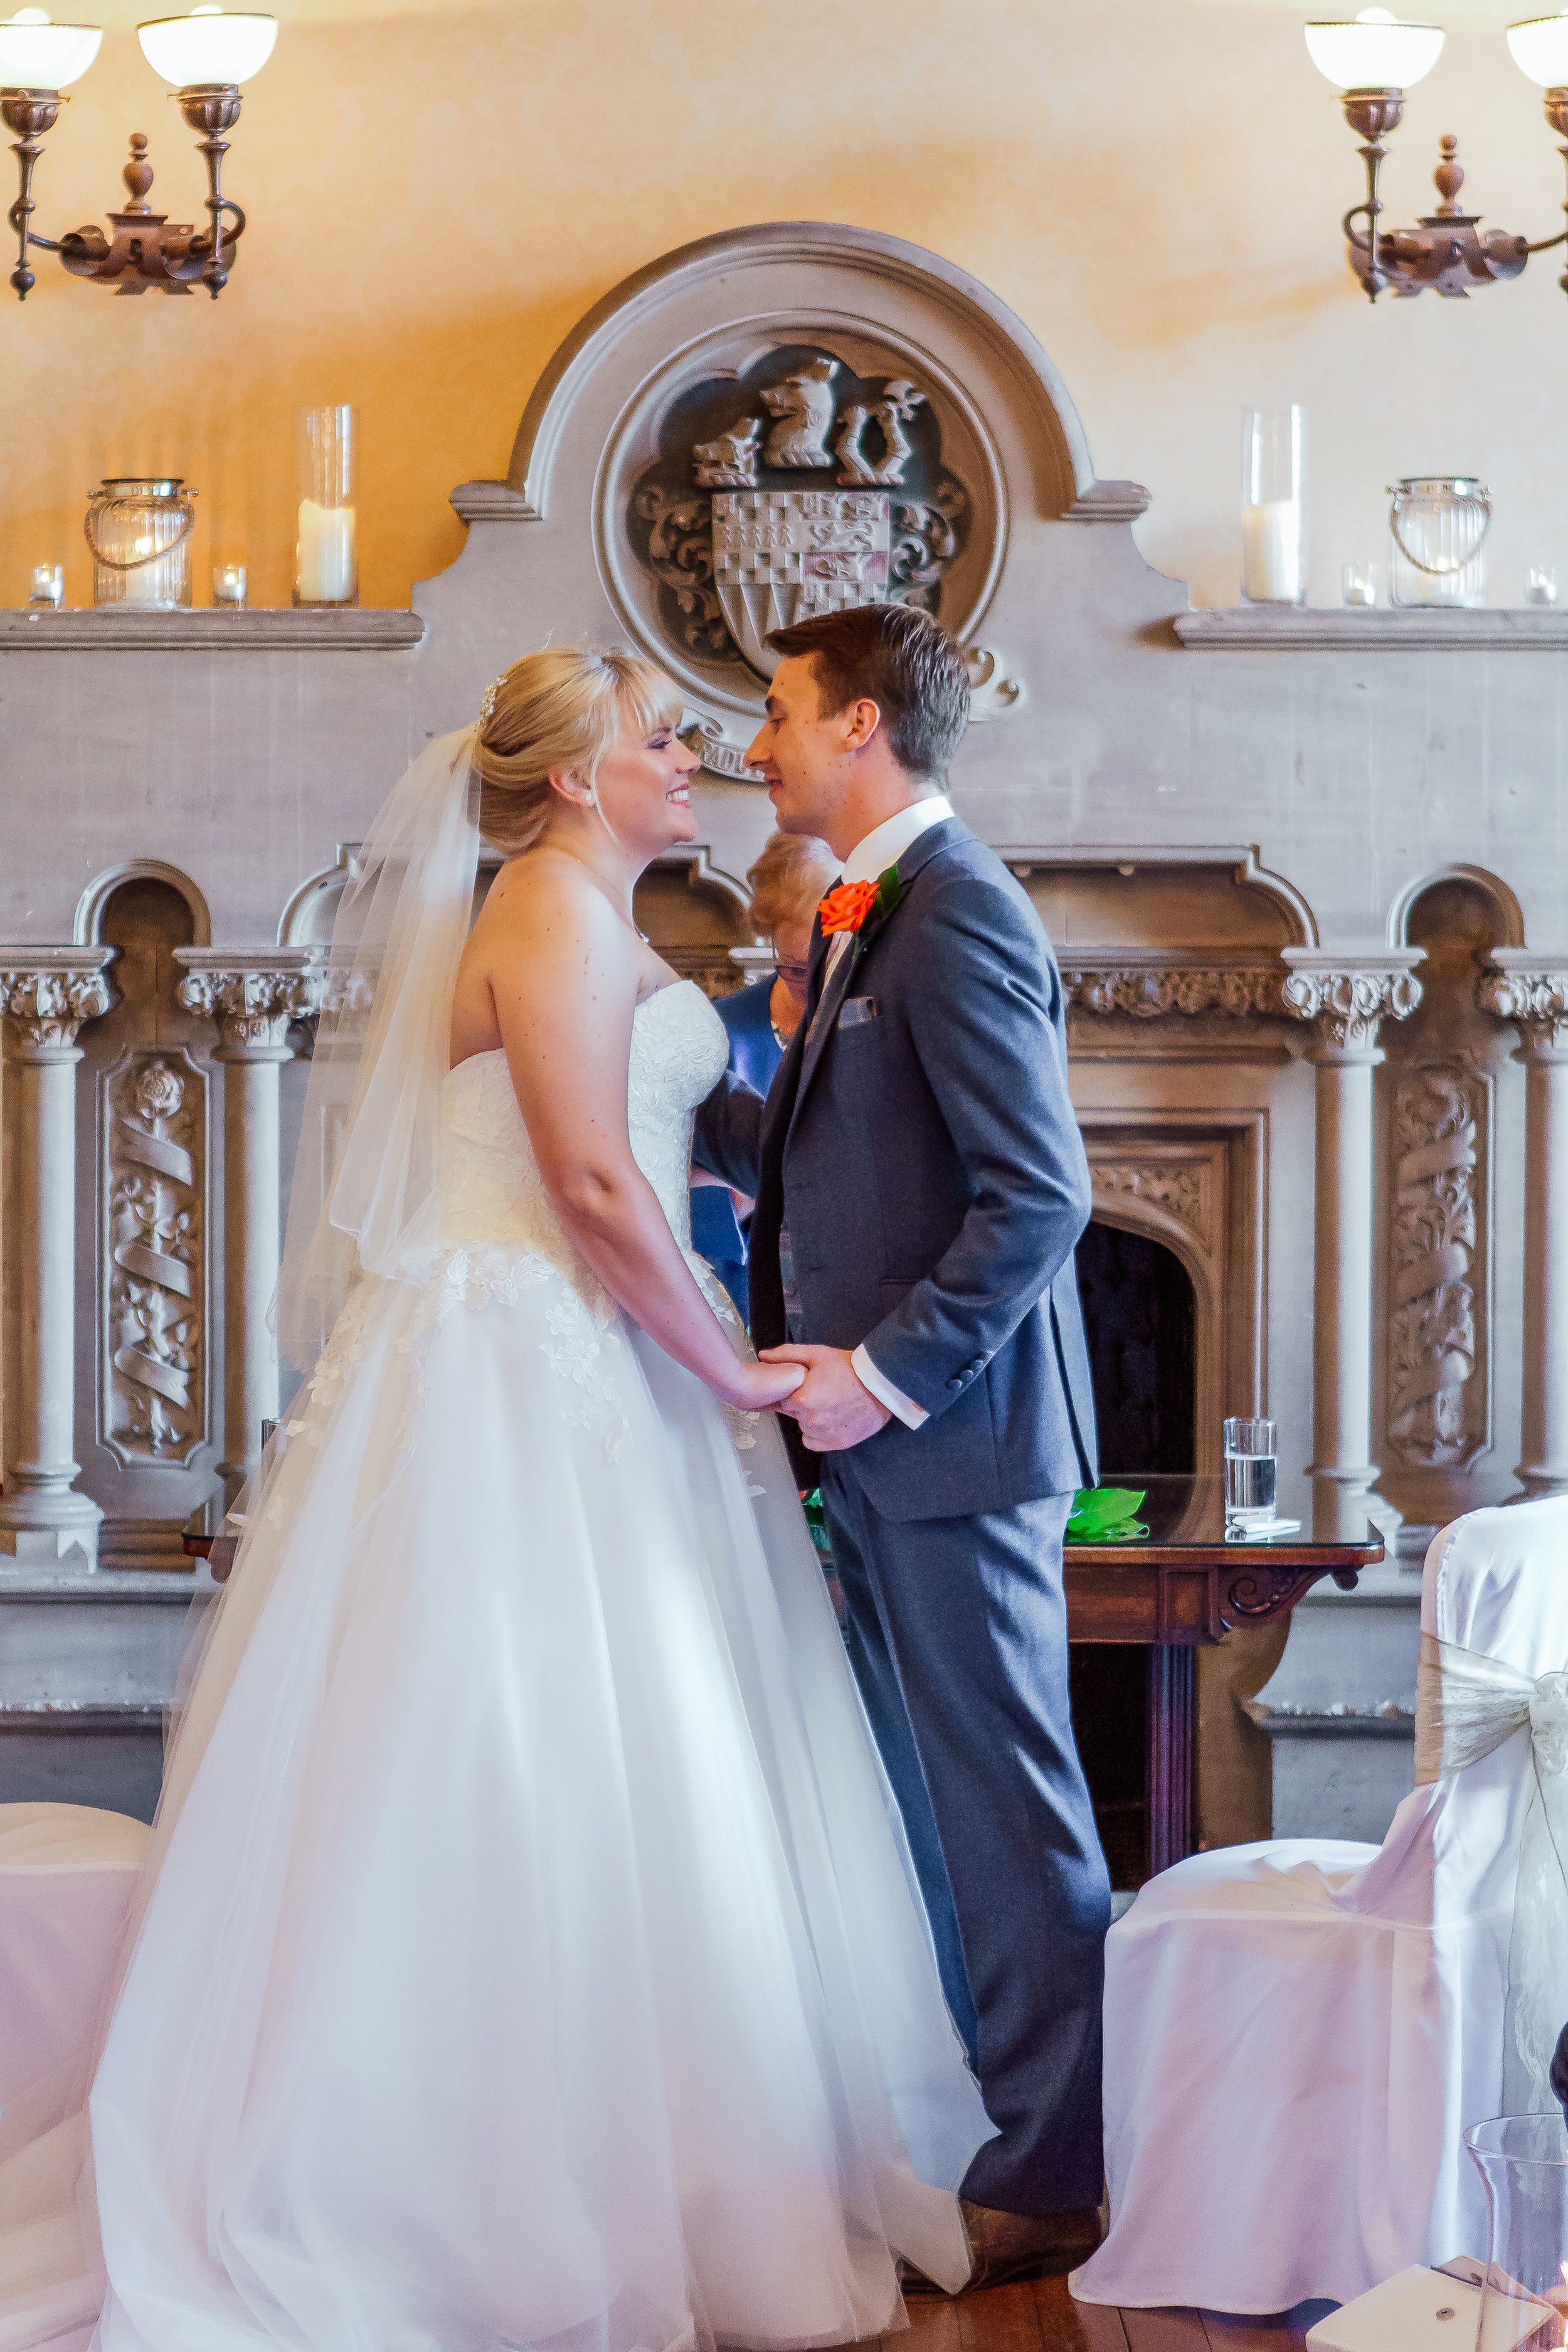 Bride and Grooms first kiss - Amy James Photography - Hampshire wedding photographer